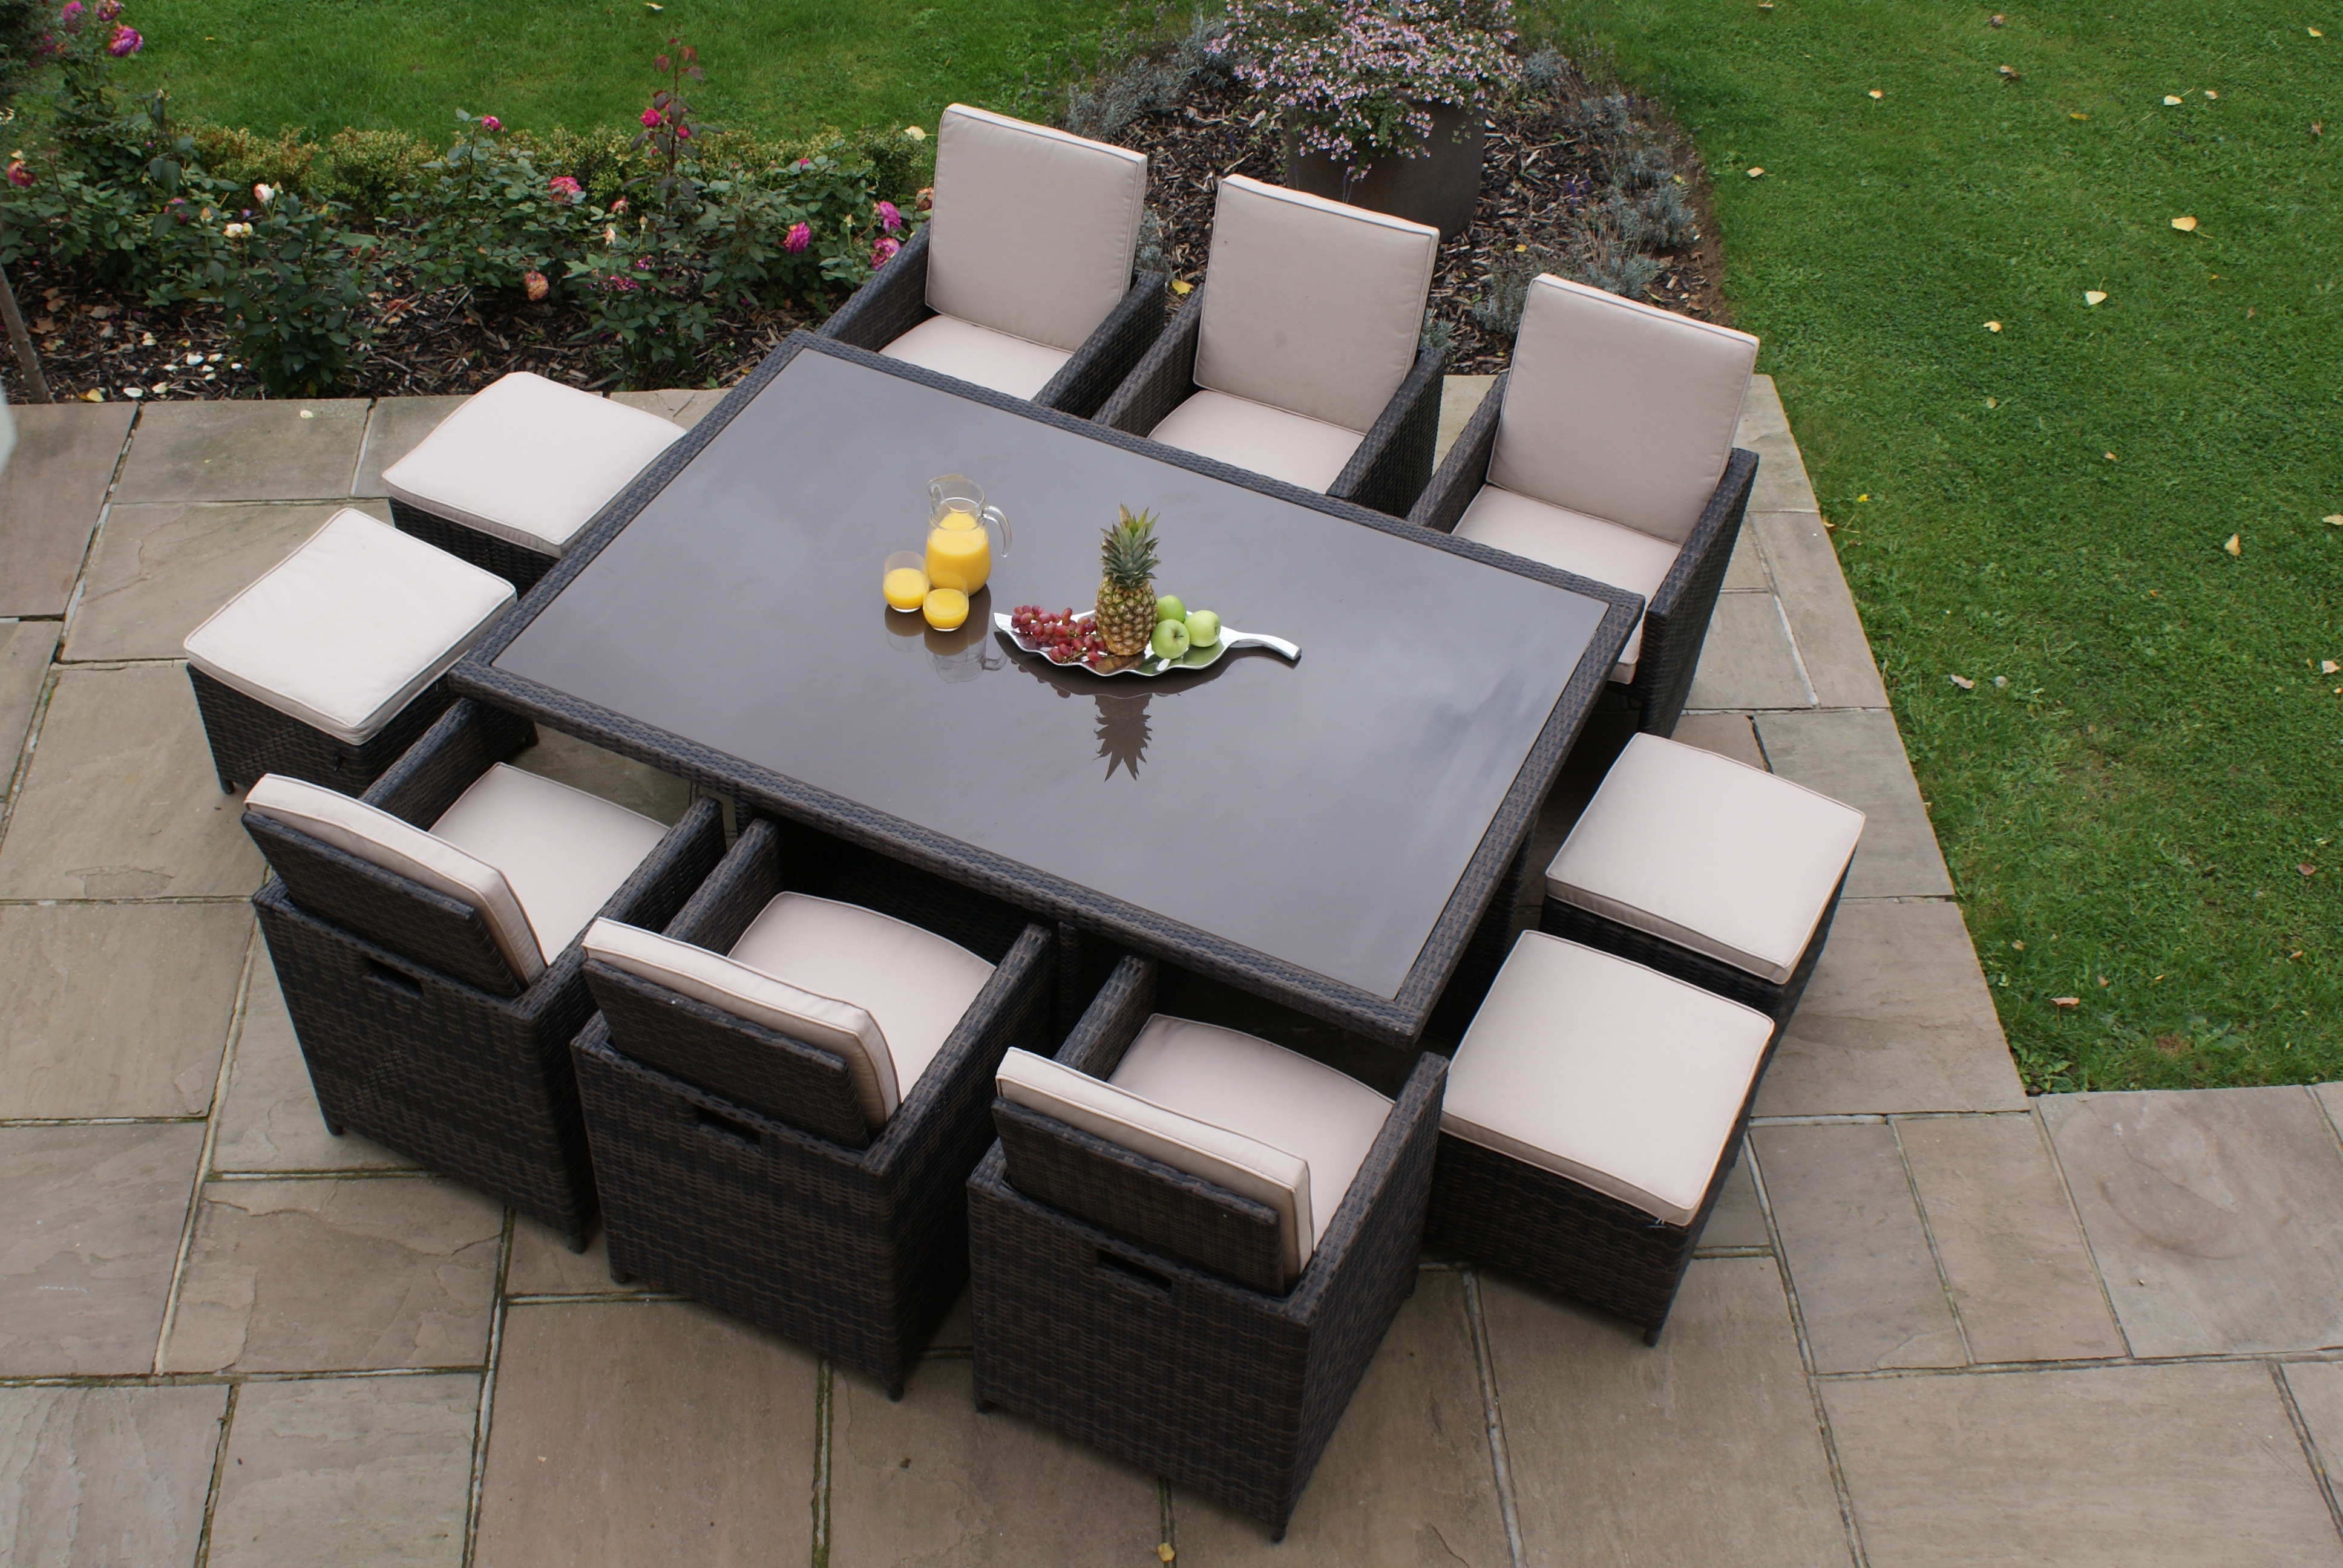 7 Piece Rattan Cube Set with Footstools